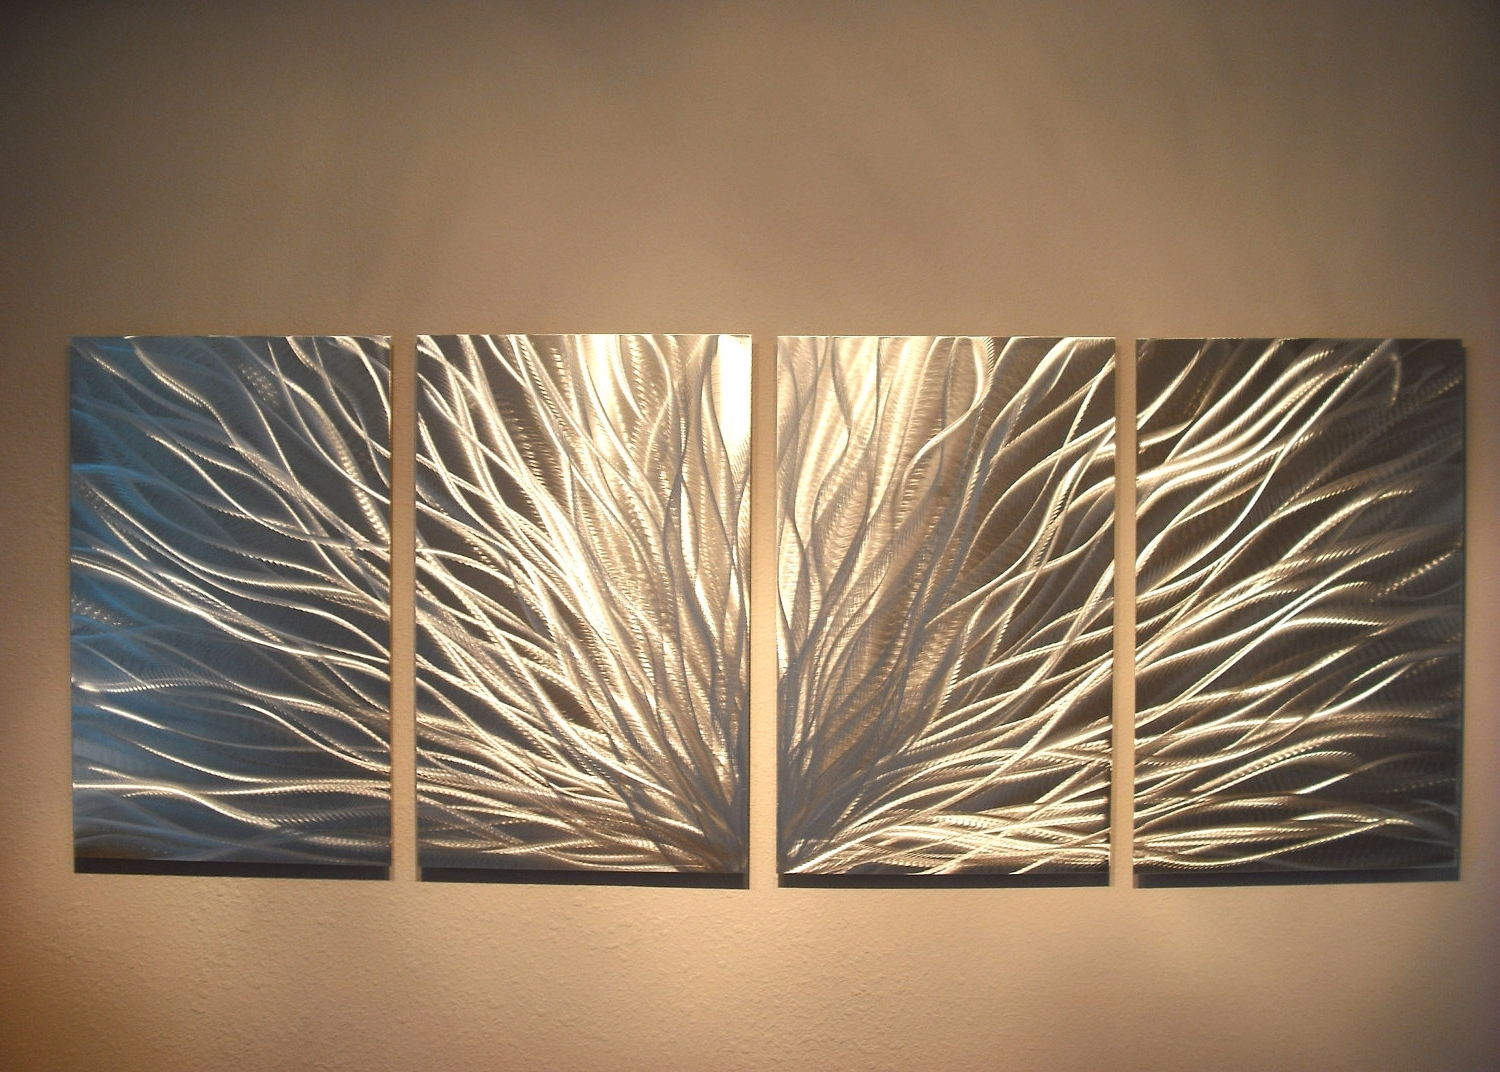 Metal Wall Art With Trendy Radiance – Abstract Metal Wall Art Contemporary Modern Decor (View 9 of 15)